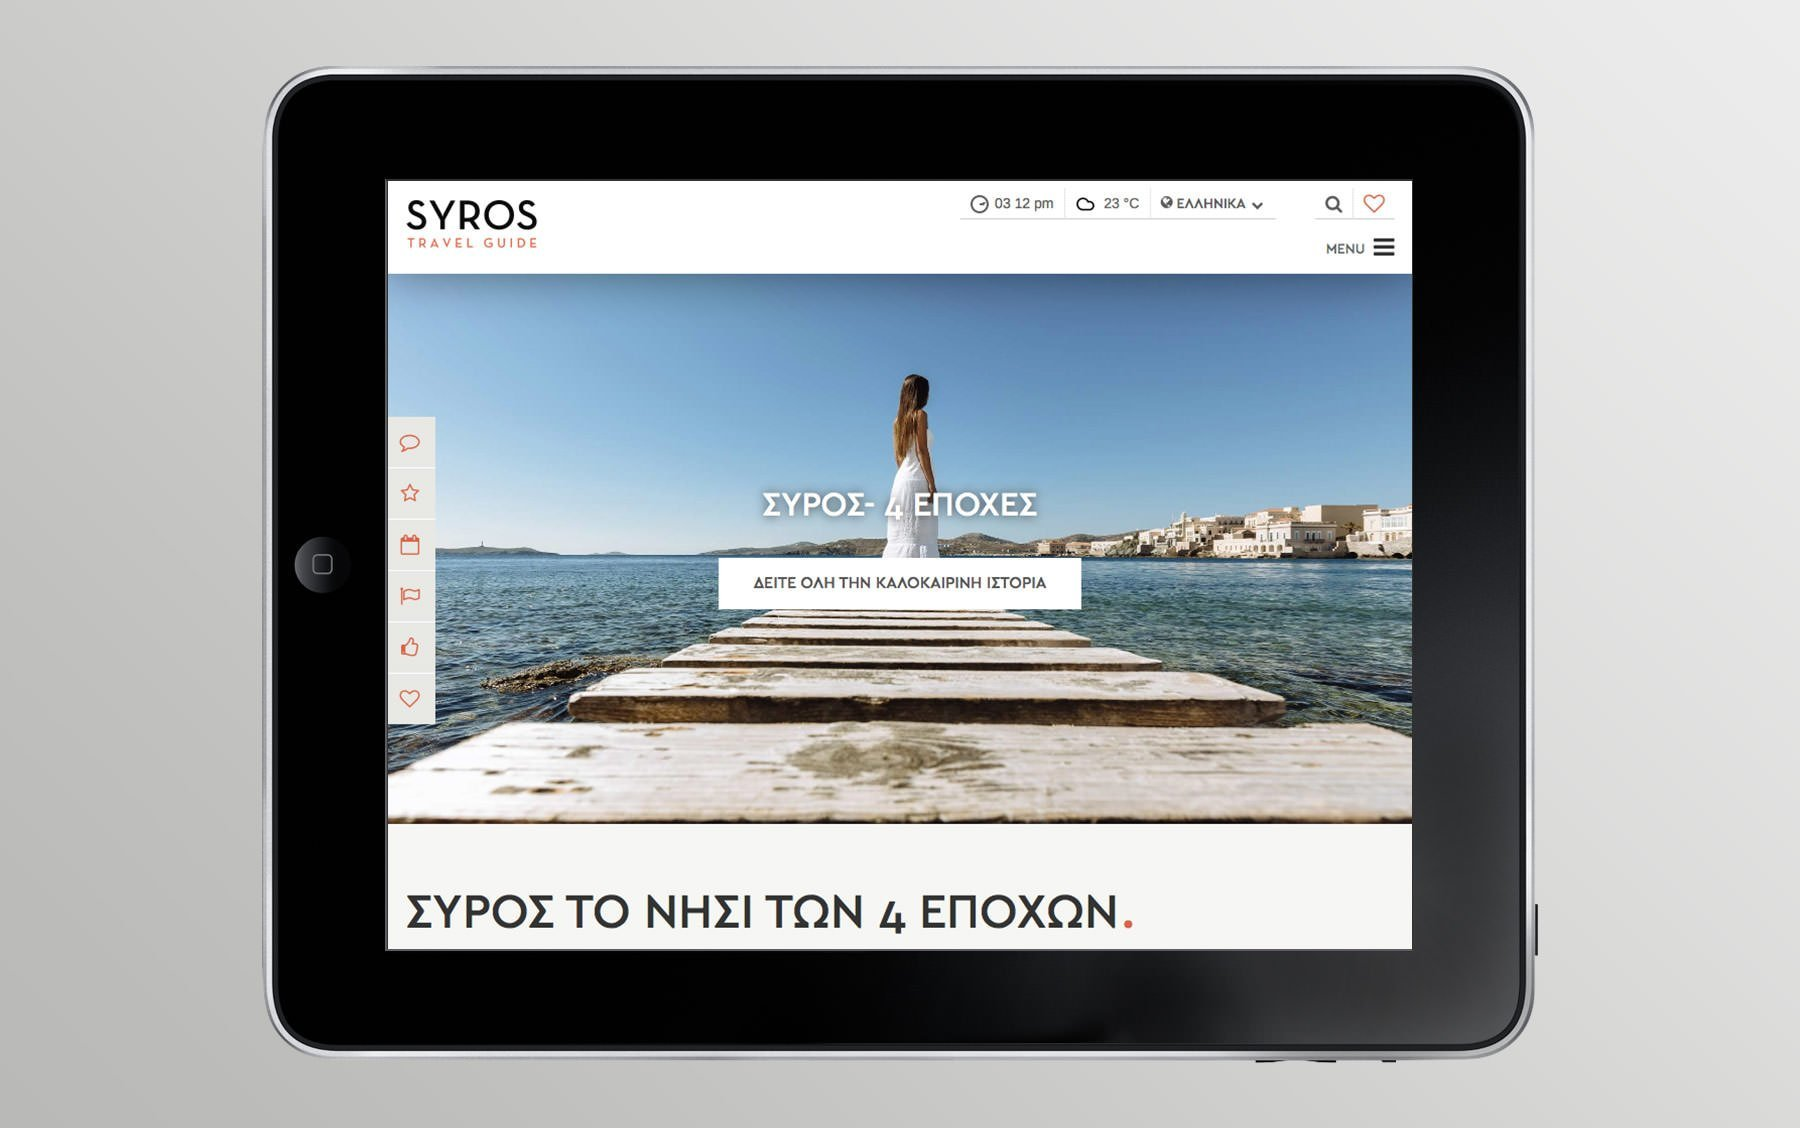 syros_travel_guide